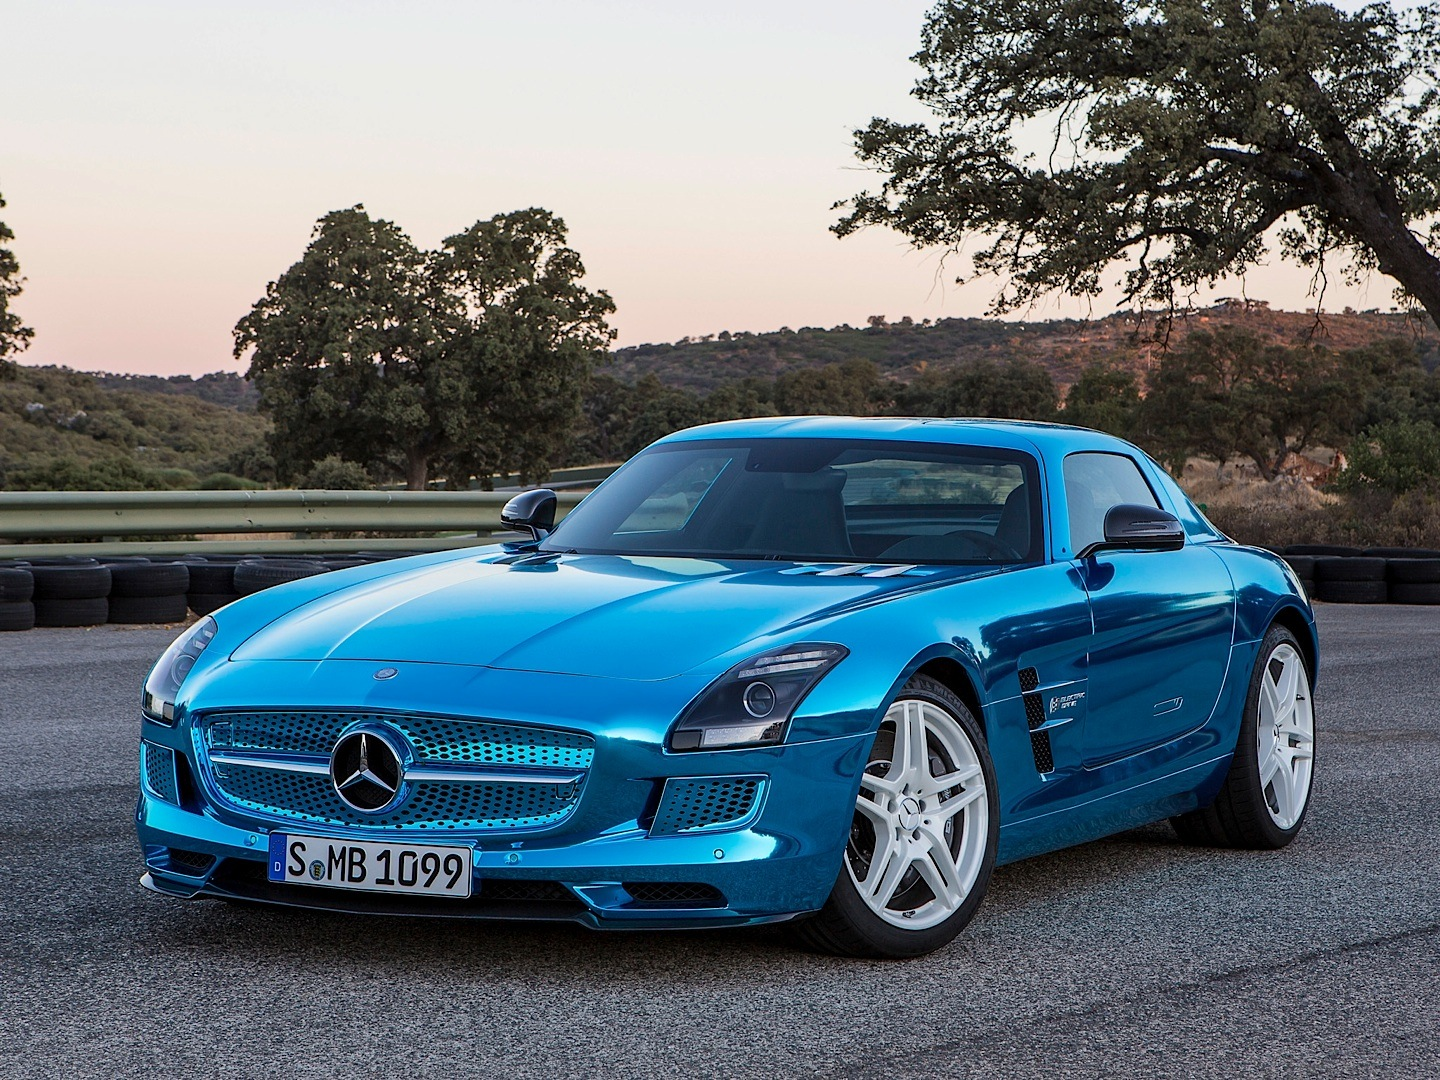 Sls amg electric drive and b class f cell win ecar awards for Win a mercedes benz